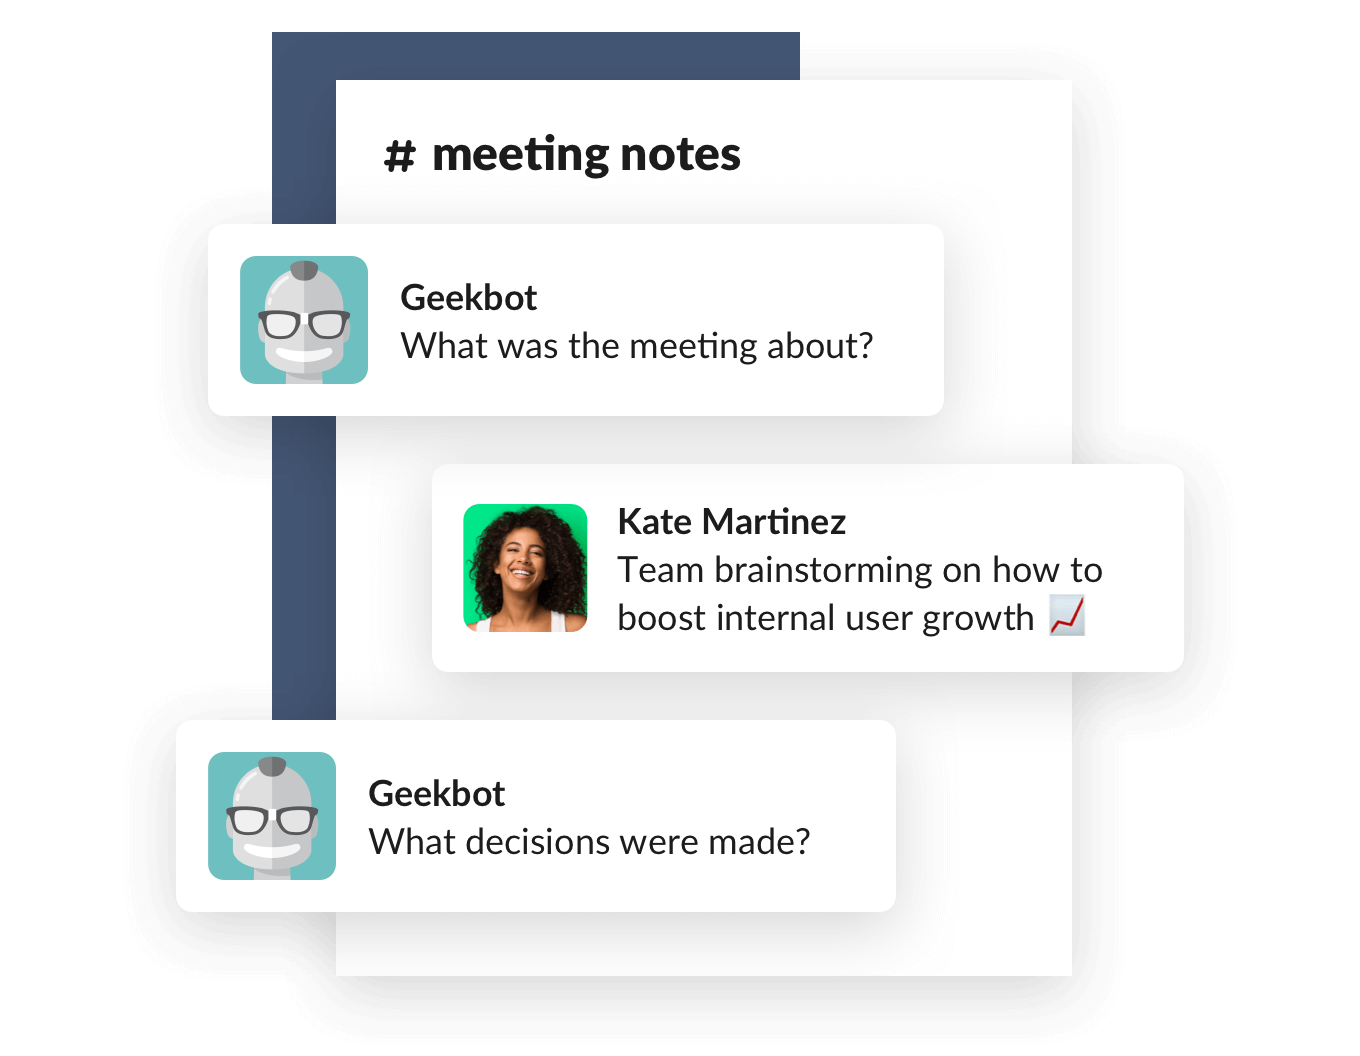 structure-meeting-notes-bot-interaction